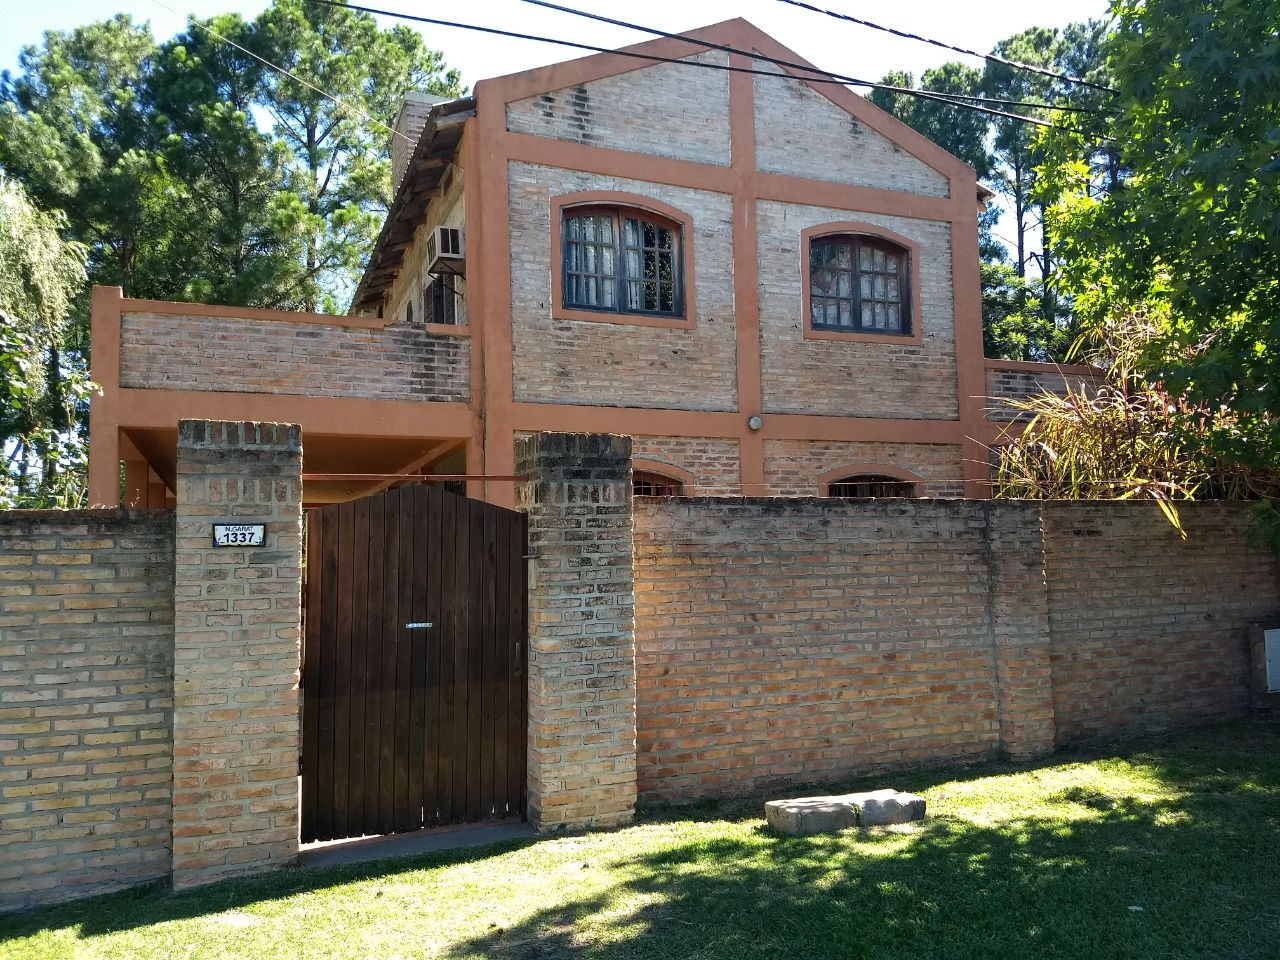 CASA BARRIO NEBEL